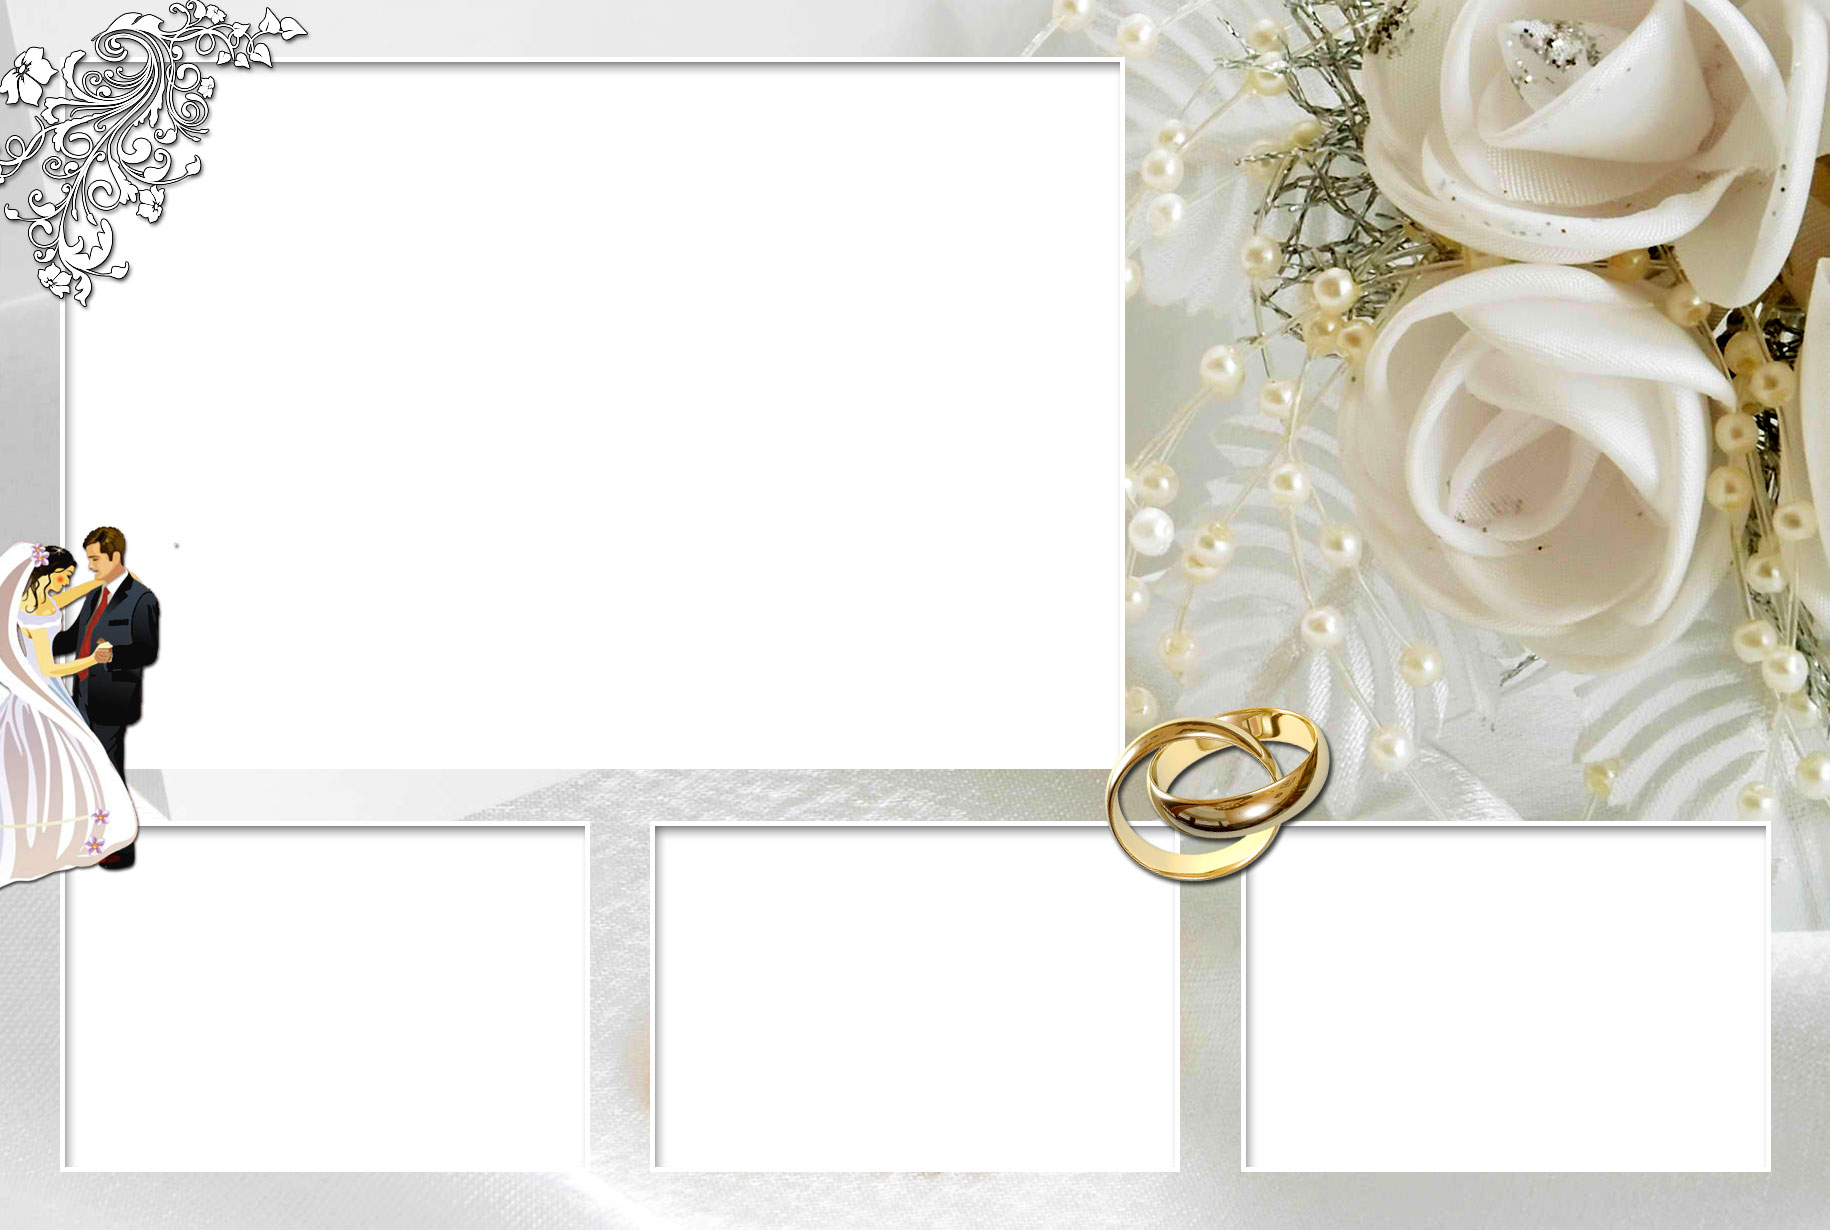 Photo Strip Design For Your Next Photo Booth Hire